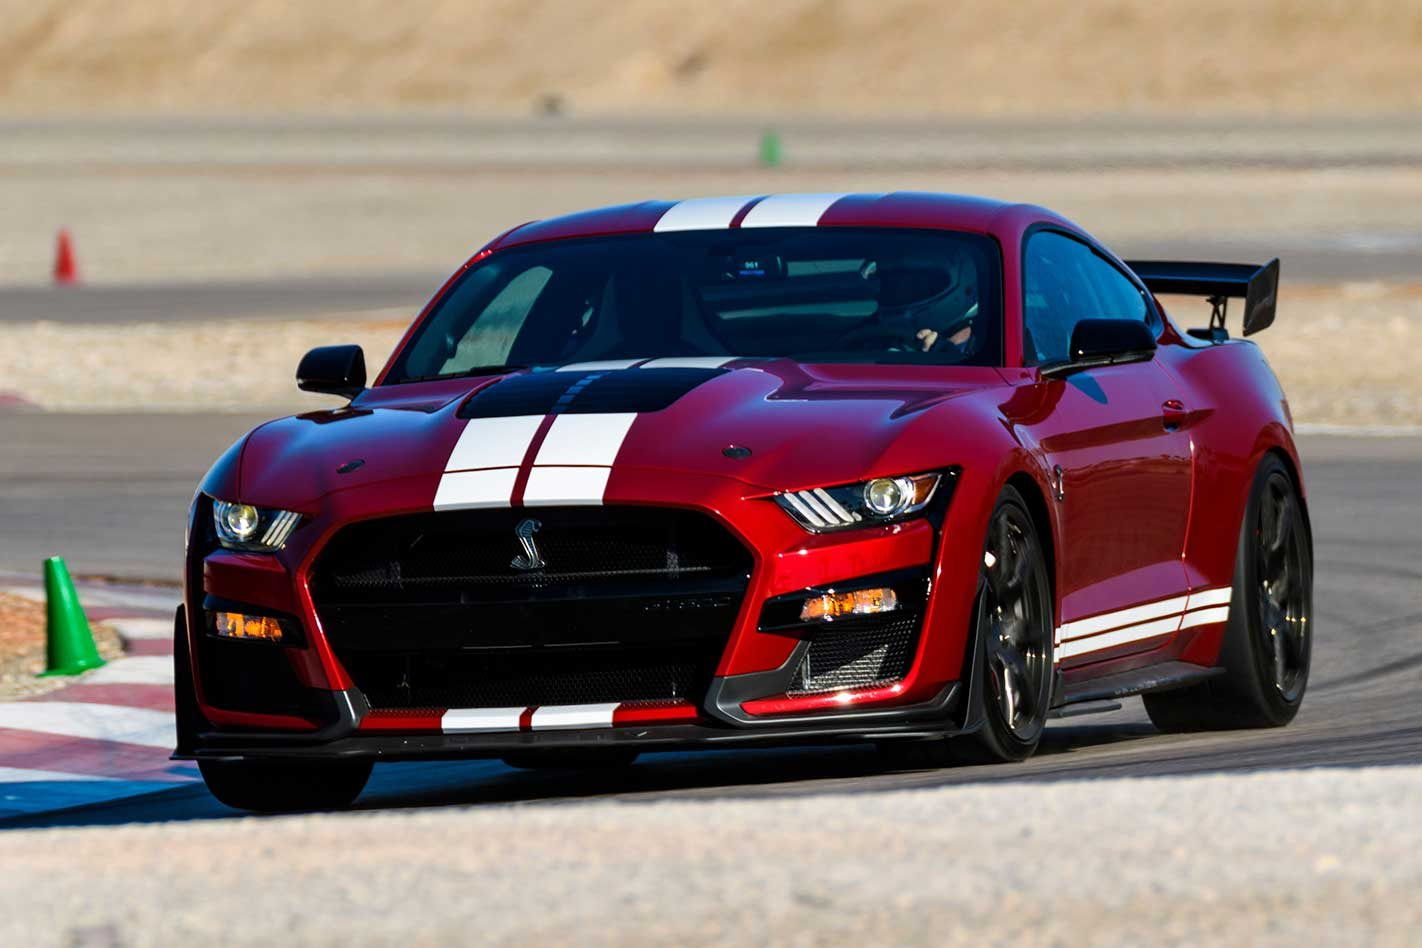 2020 Ford Mustang Shelby Gt500 Motor First Drive Review